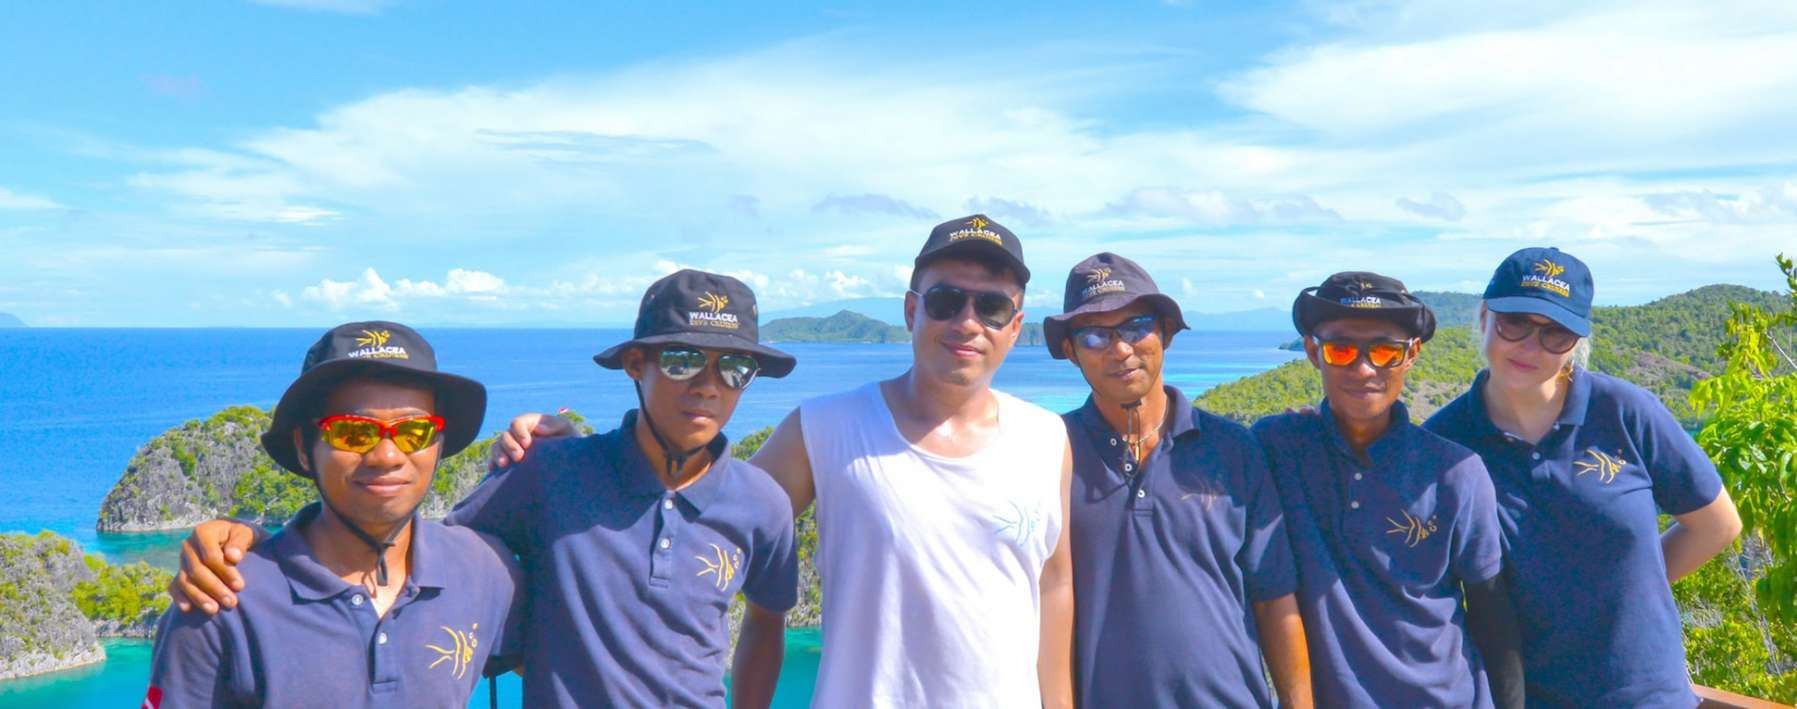 The Crew | Raja Ampat